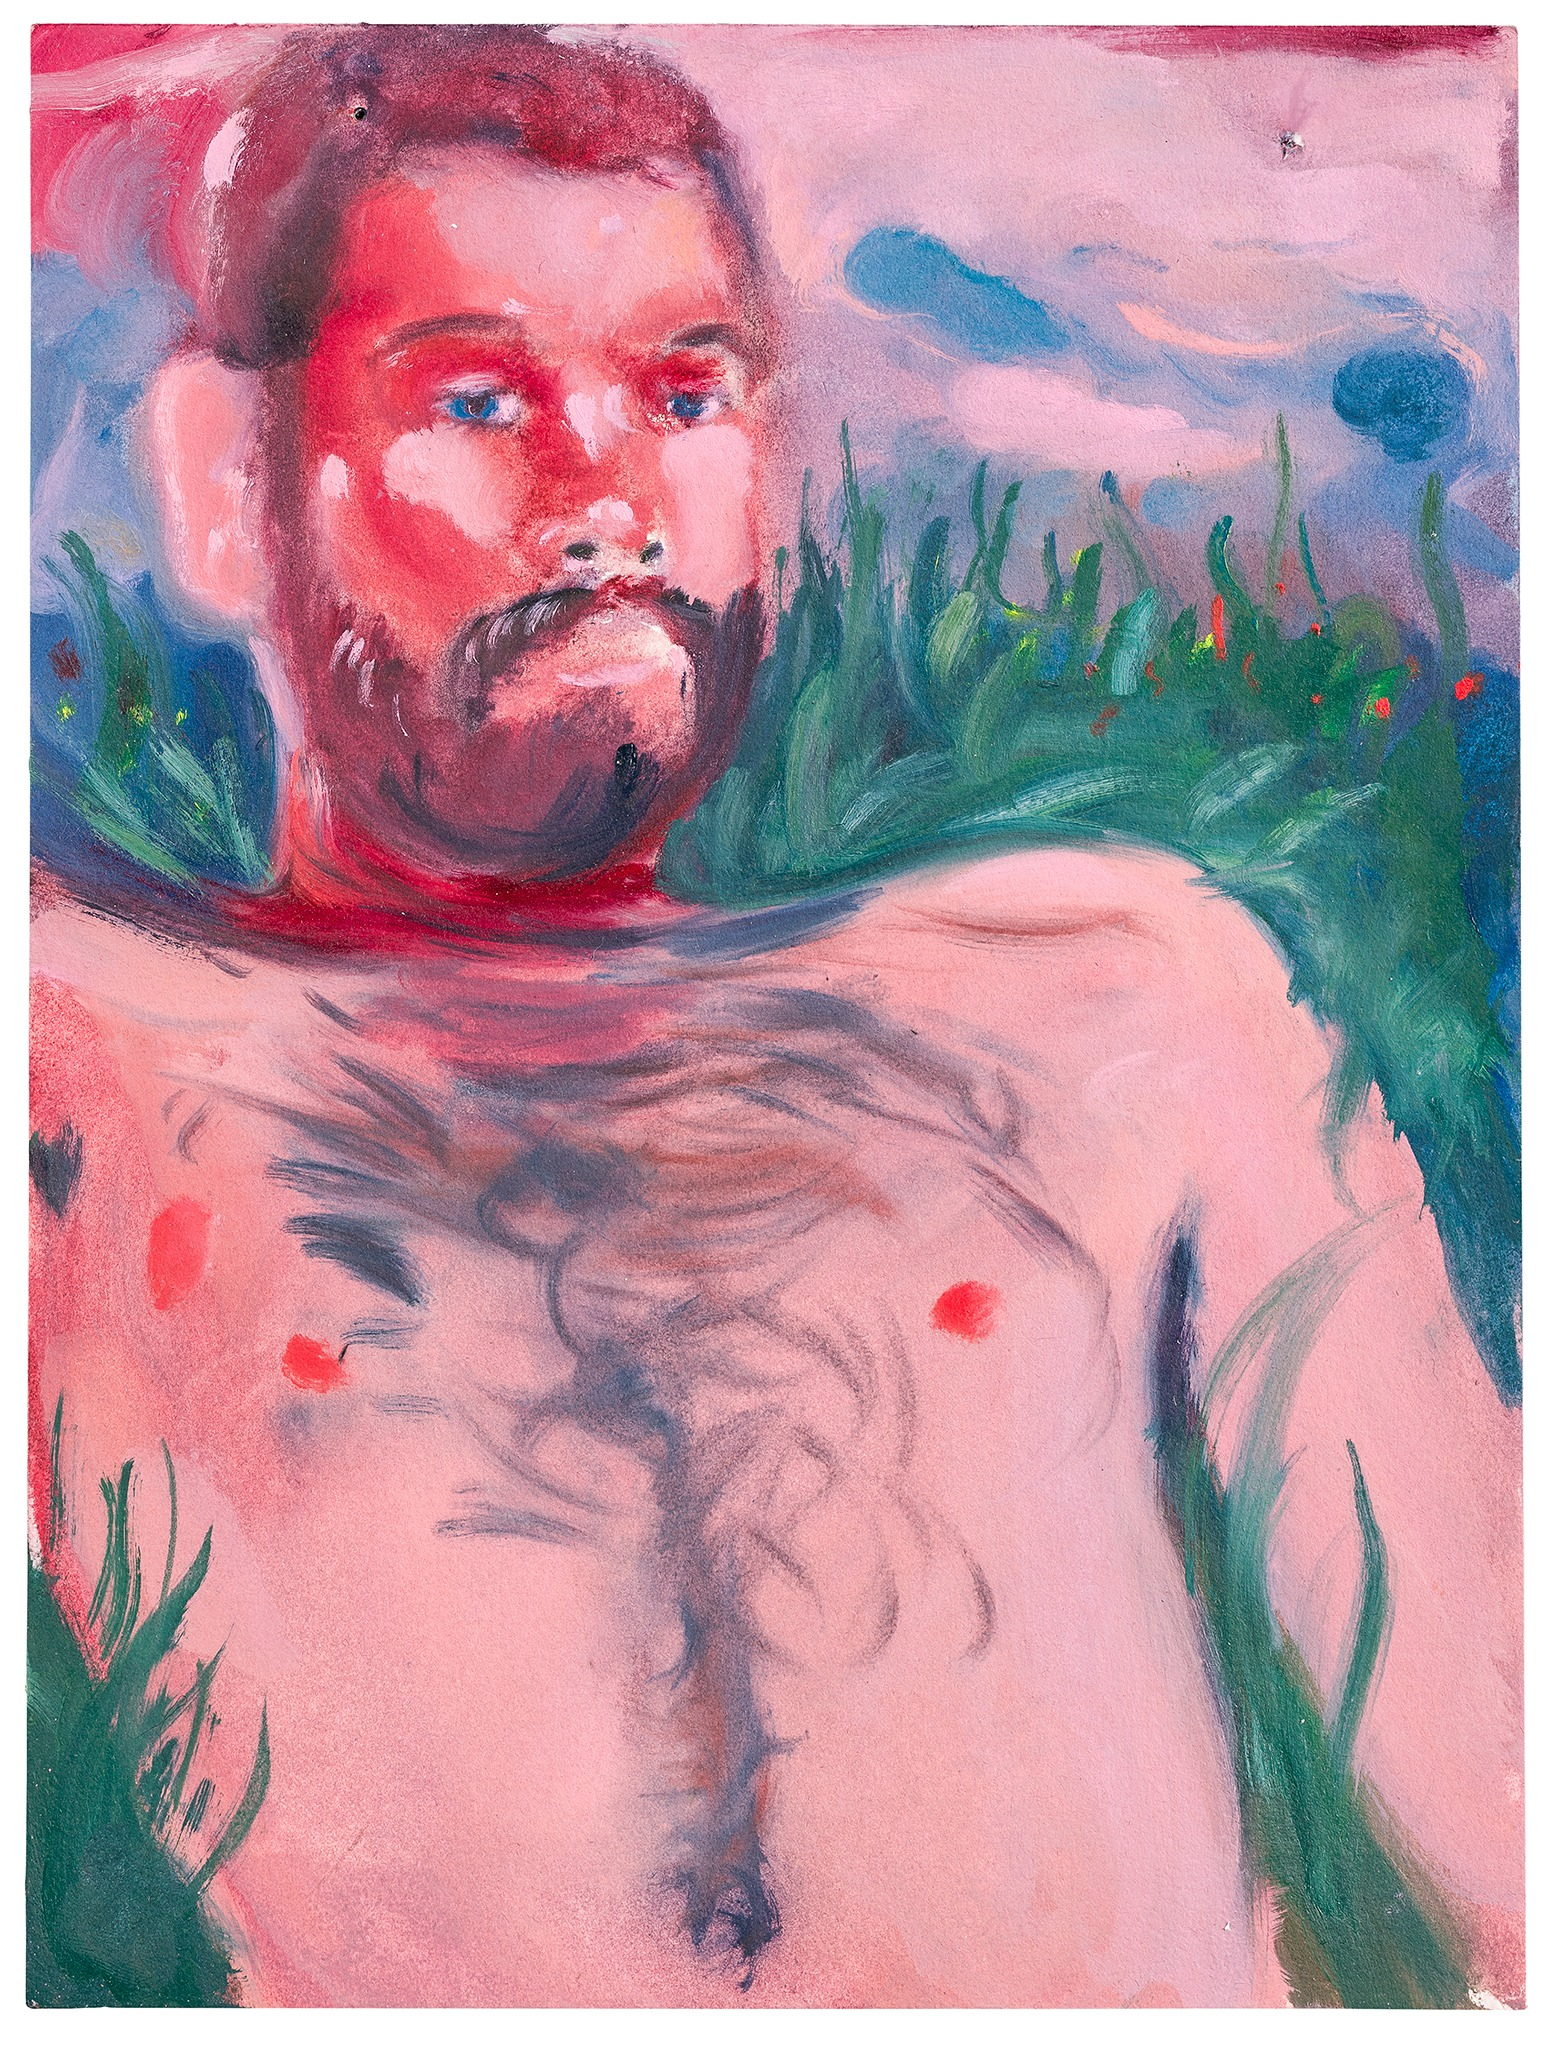 A painting by Aaron Michael Skolnick titled Untitled, dated 2020.